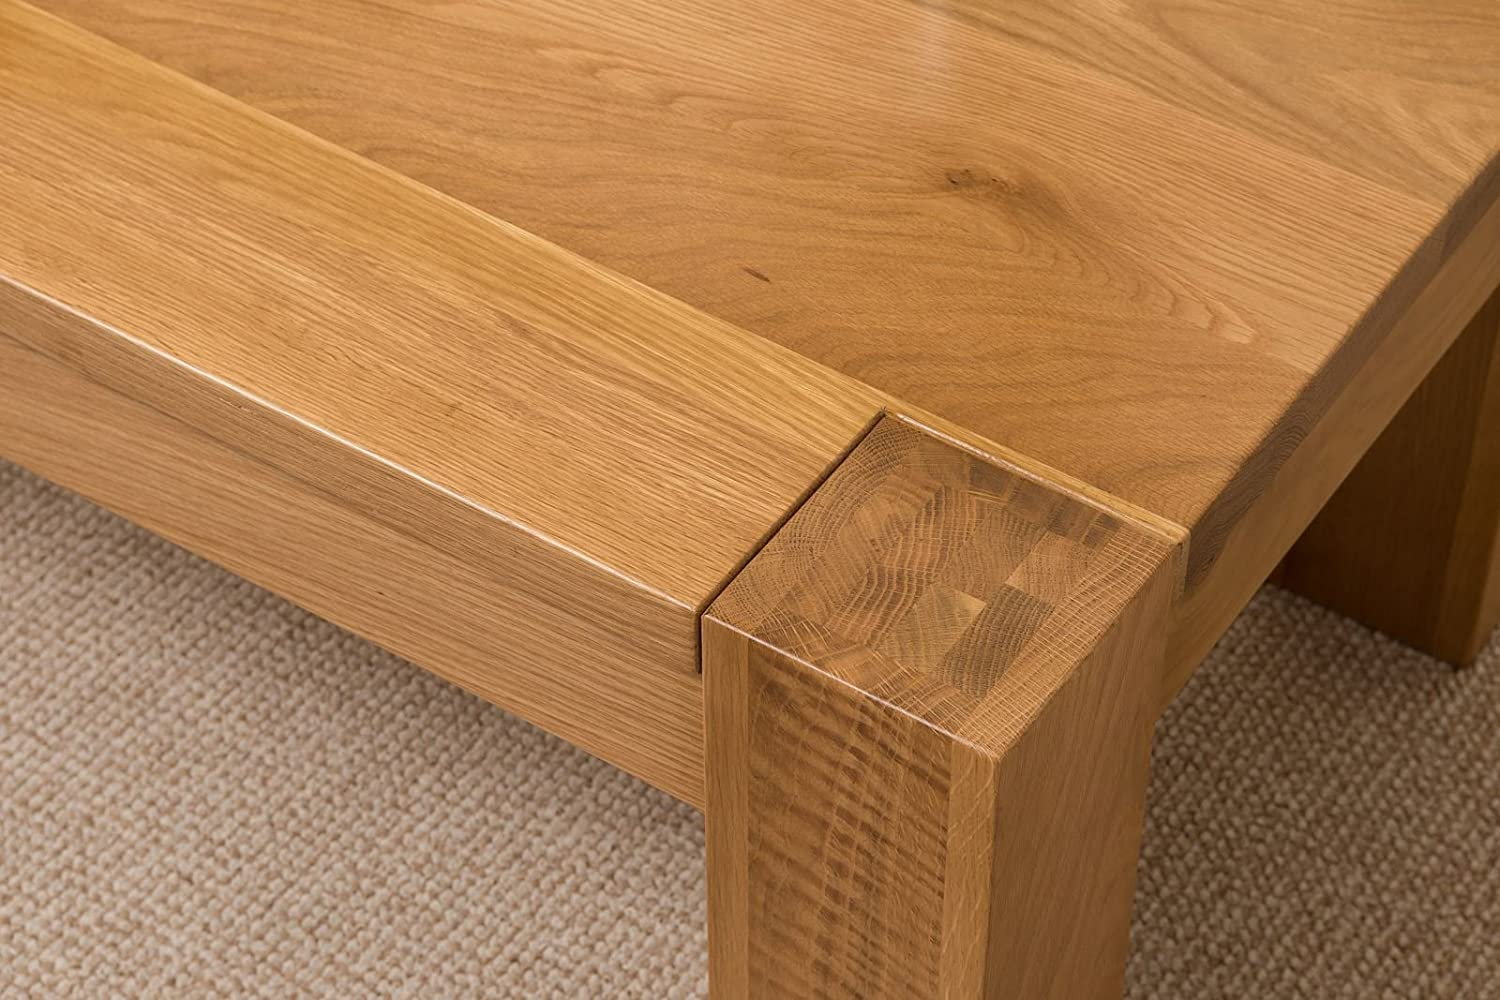 kuba chunky solid oak wood large coffee table unit wooden living